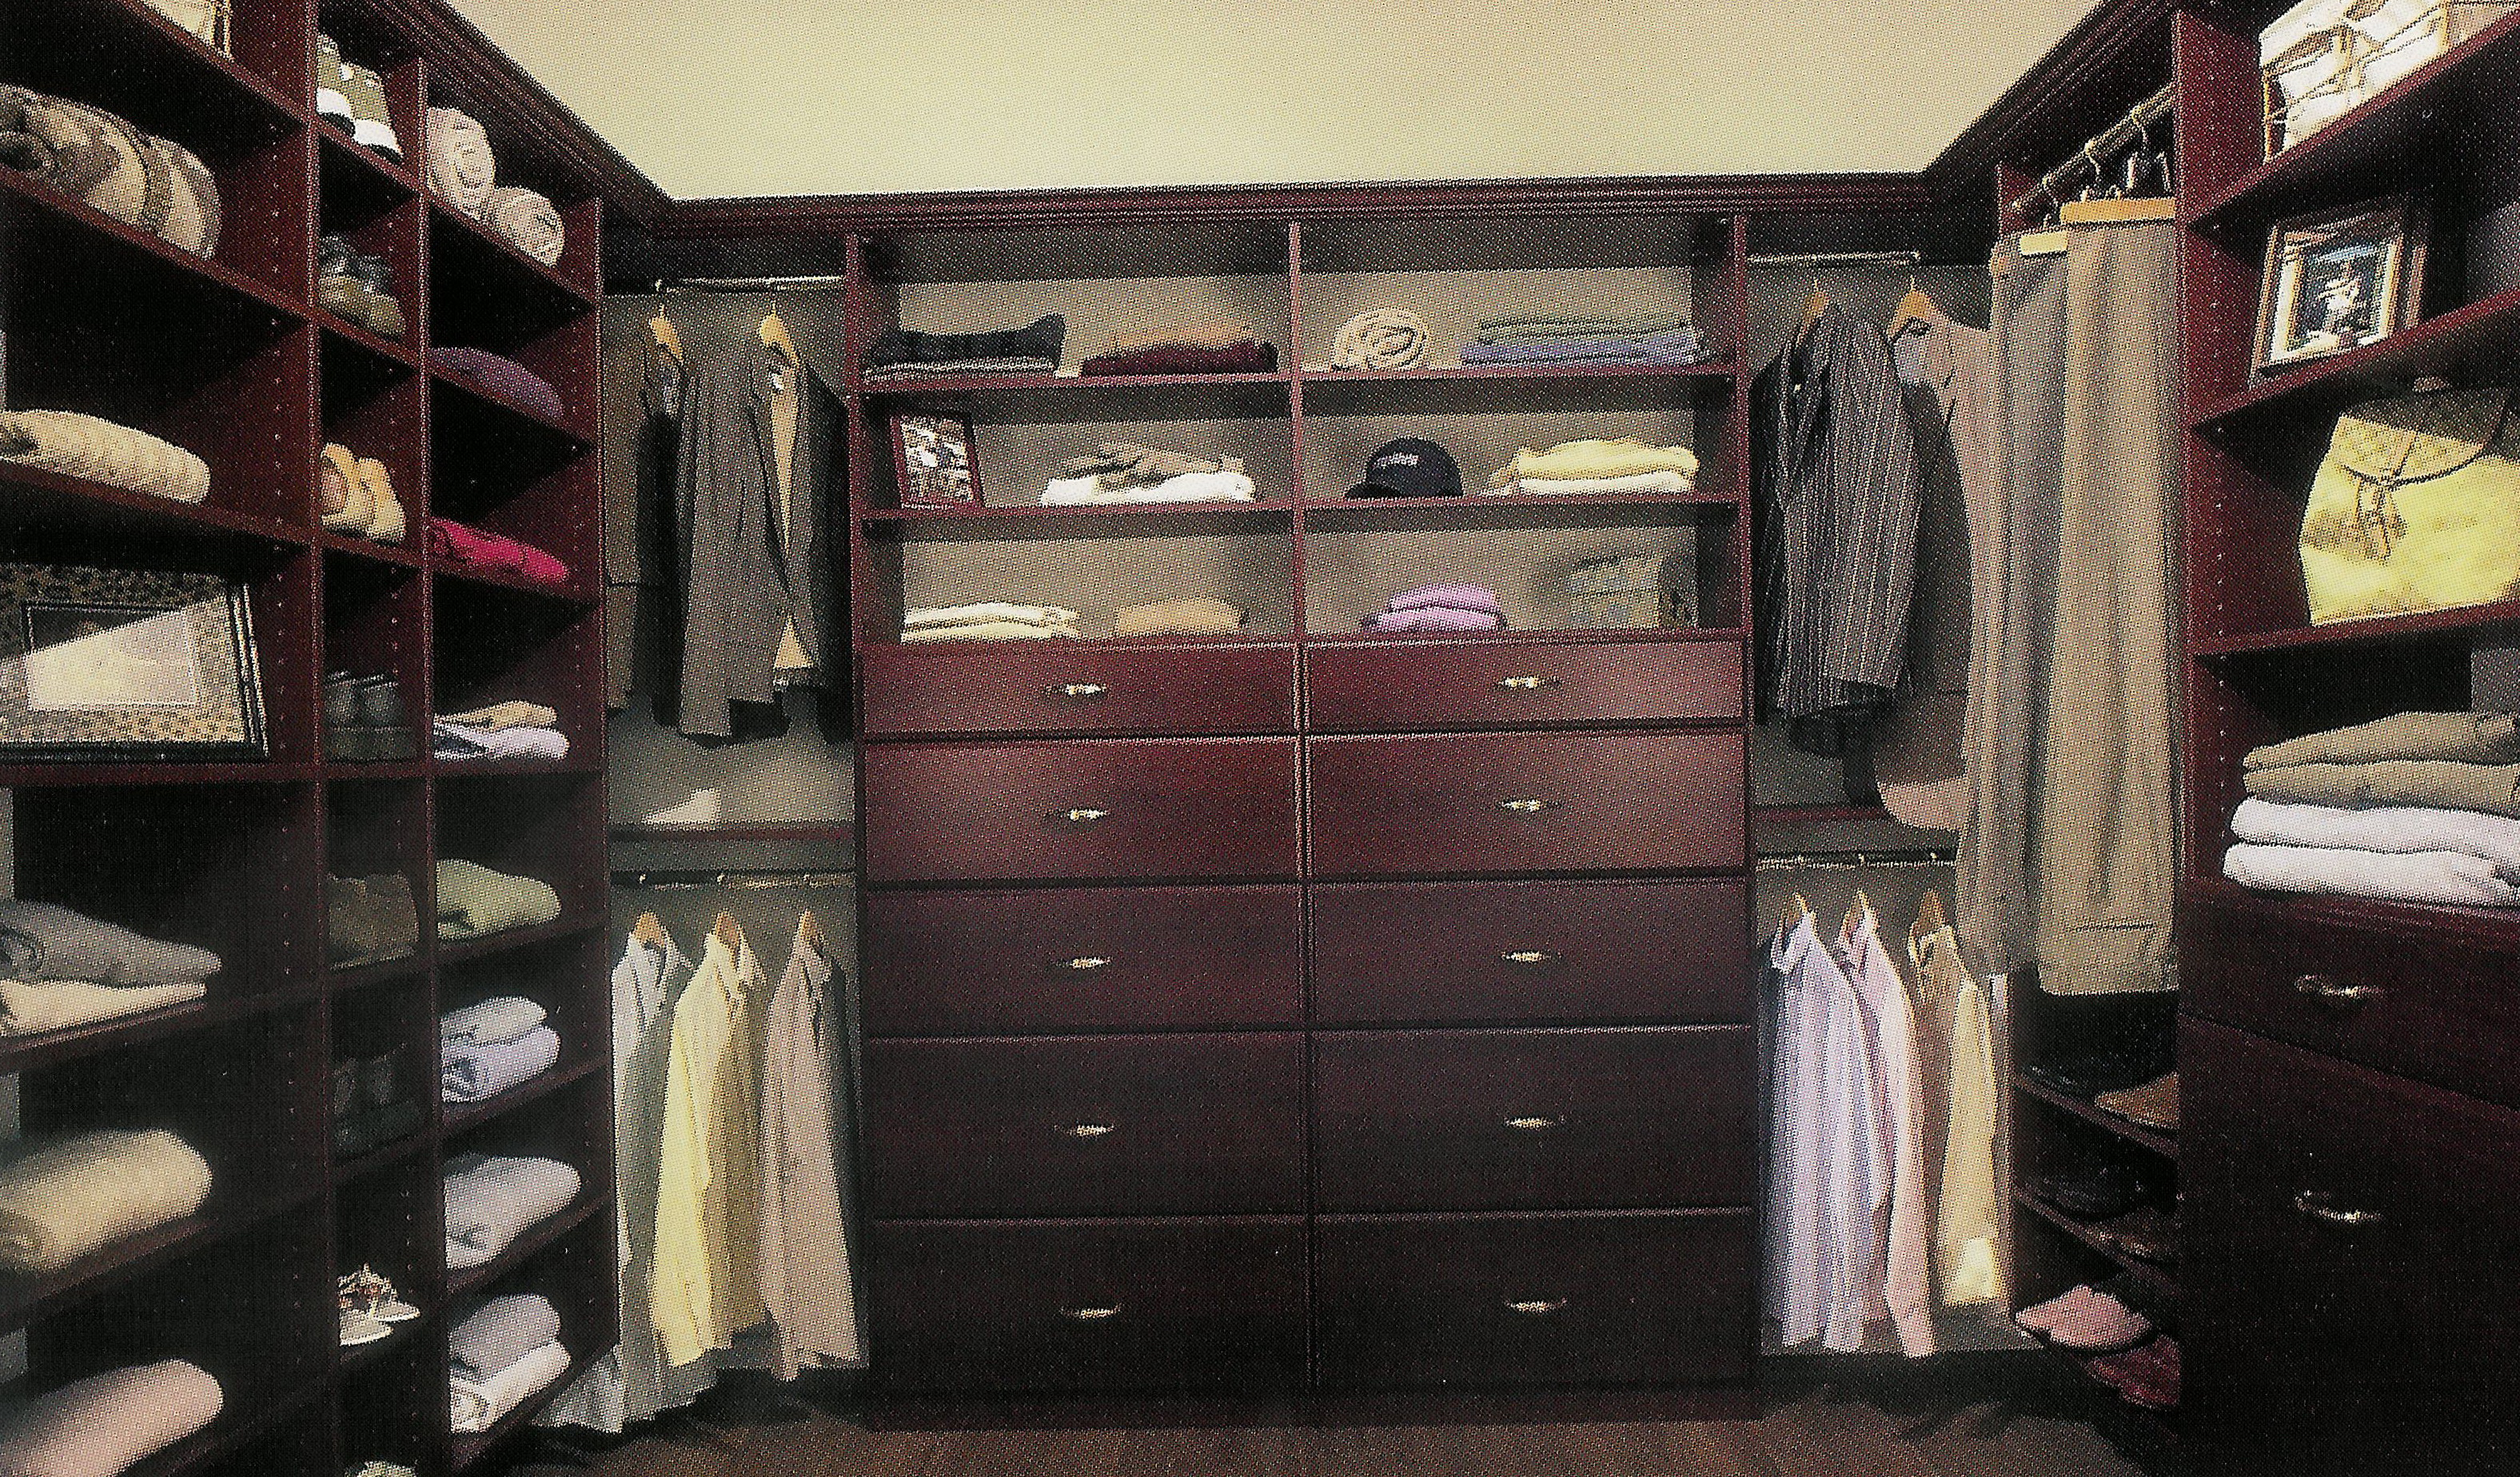 Nice Do It Yourself Home Kit From Menards Www Menards Com: Walk In Closet Organizers Do It Yourself